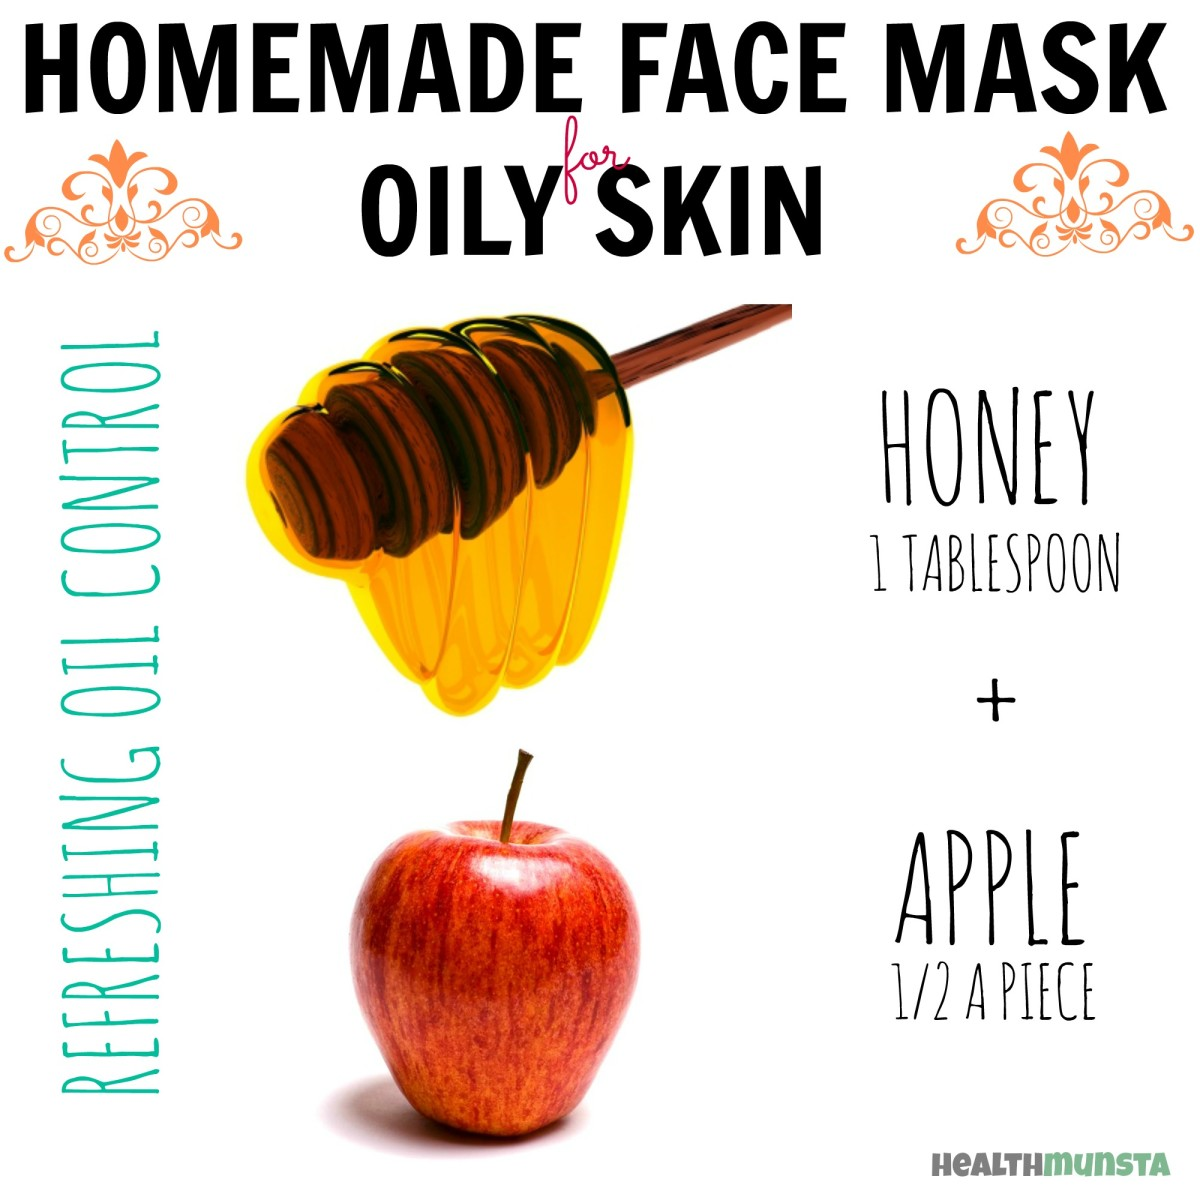 This is such a sweet and simple mask (literally!). Mix honey and apple together to form an awesome balancing face mask for oily skin.